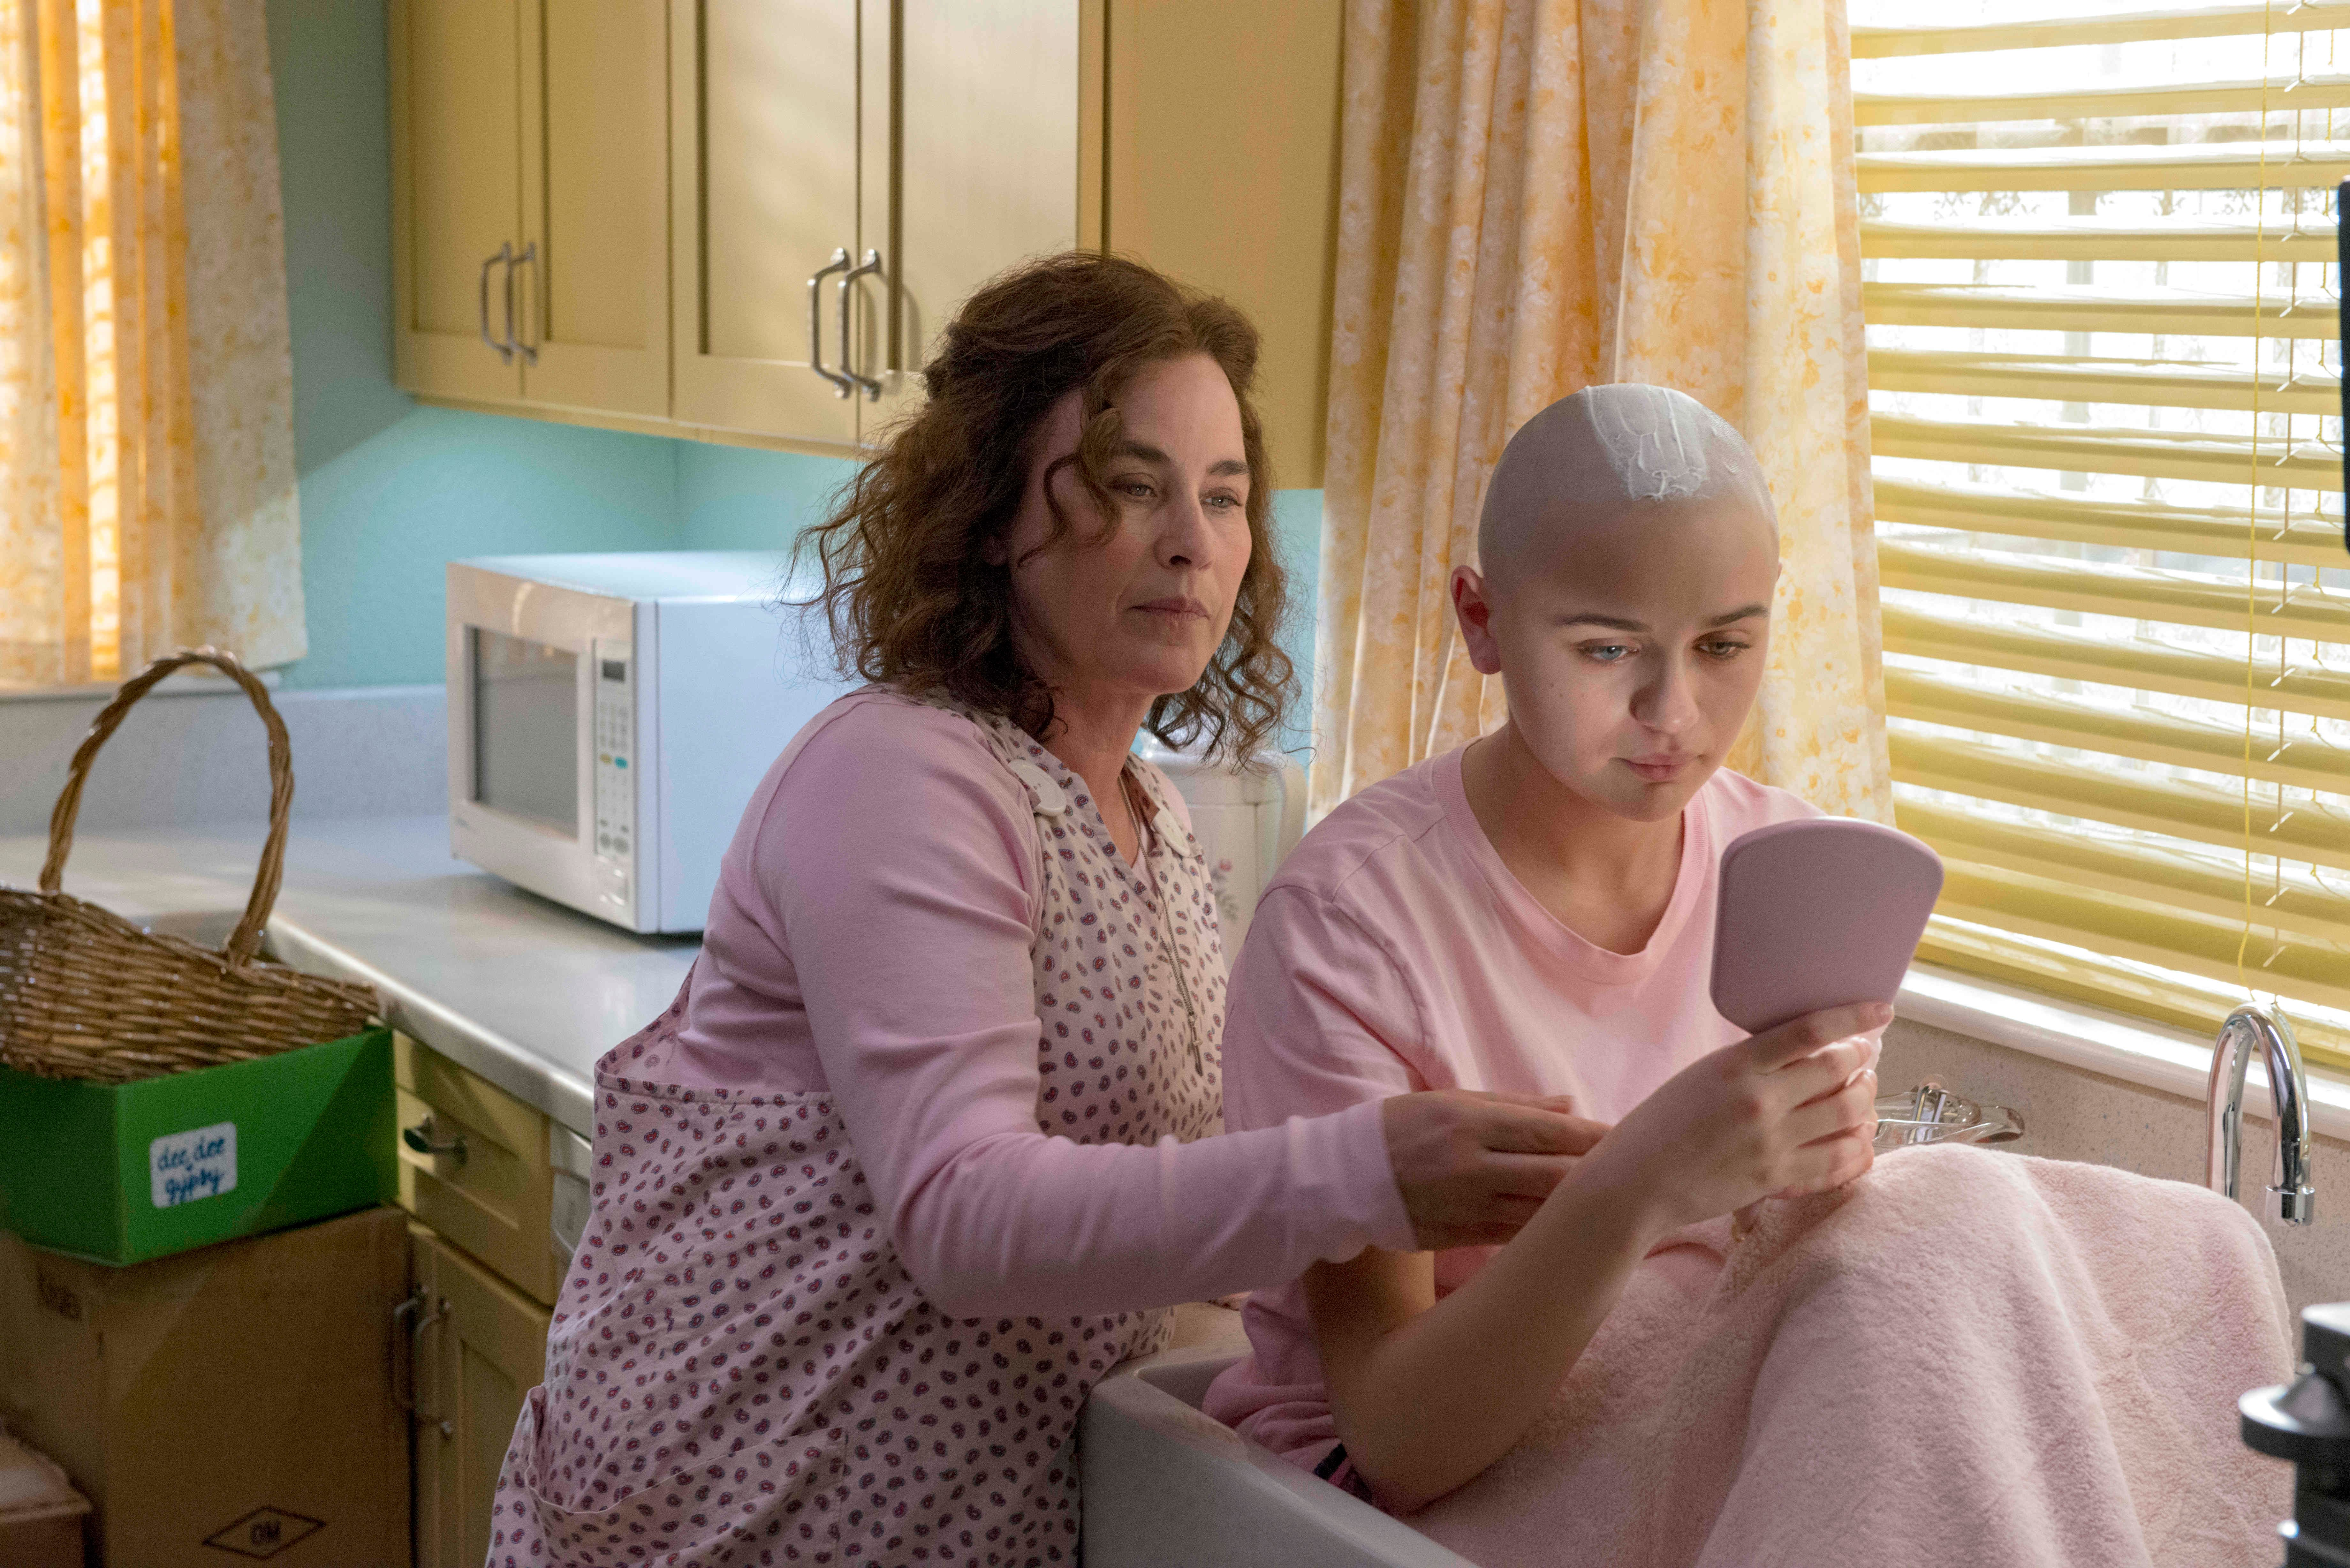 The Act Review: Hulu's True Crime Miniseries Takes on a